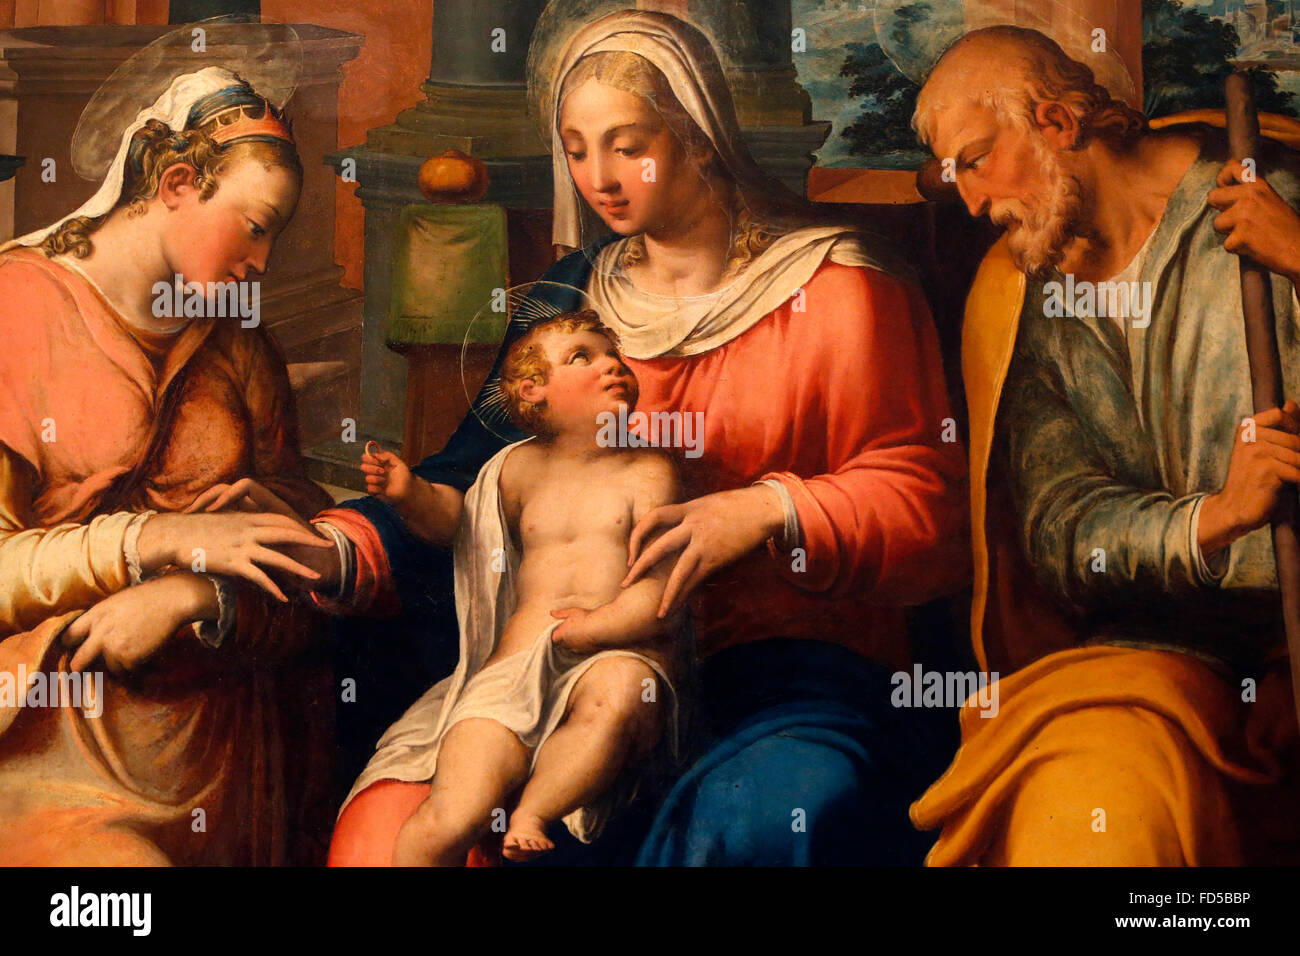 National Gallery, Bologna. Mystical marriage of Sainte Catherine of Siena. Giovanni Battista Ramenghi, c 1545. - Stock Image